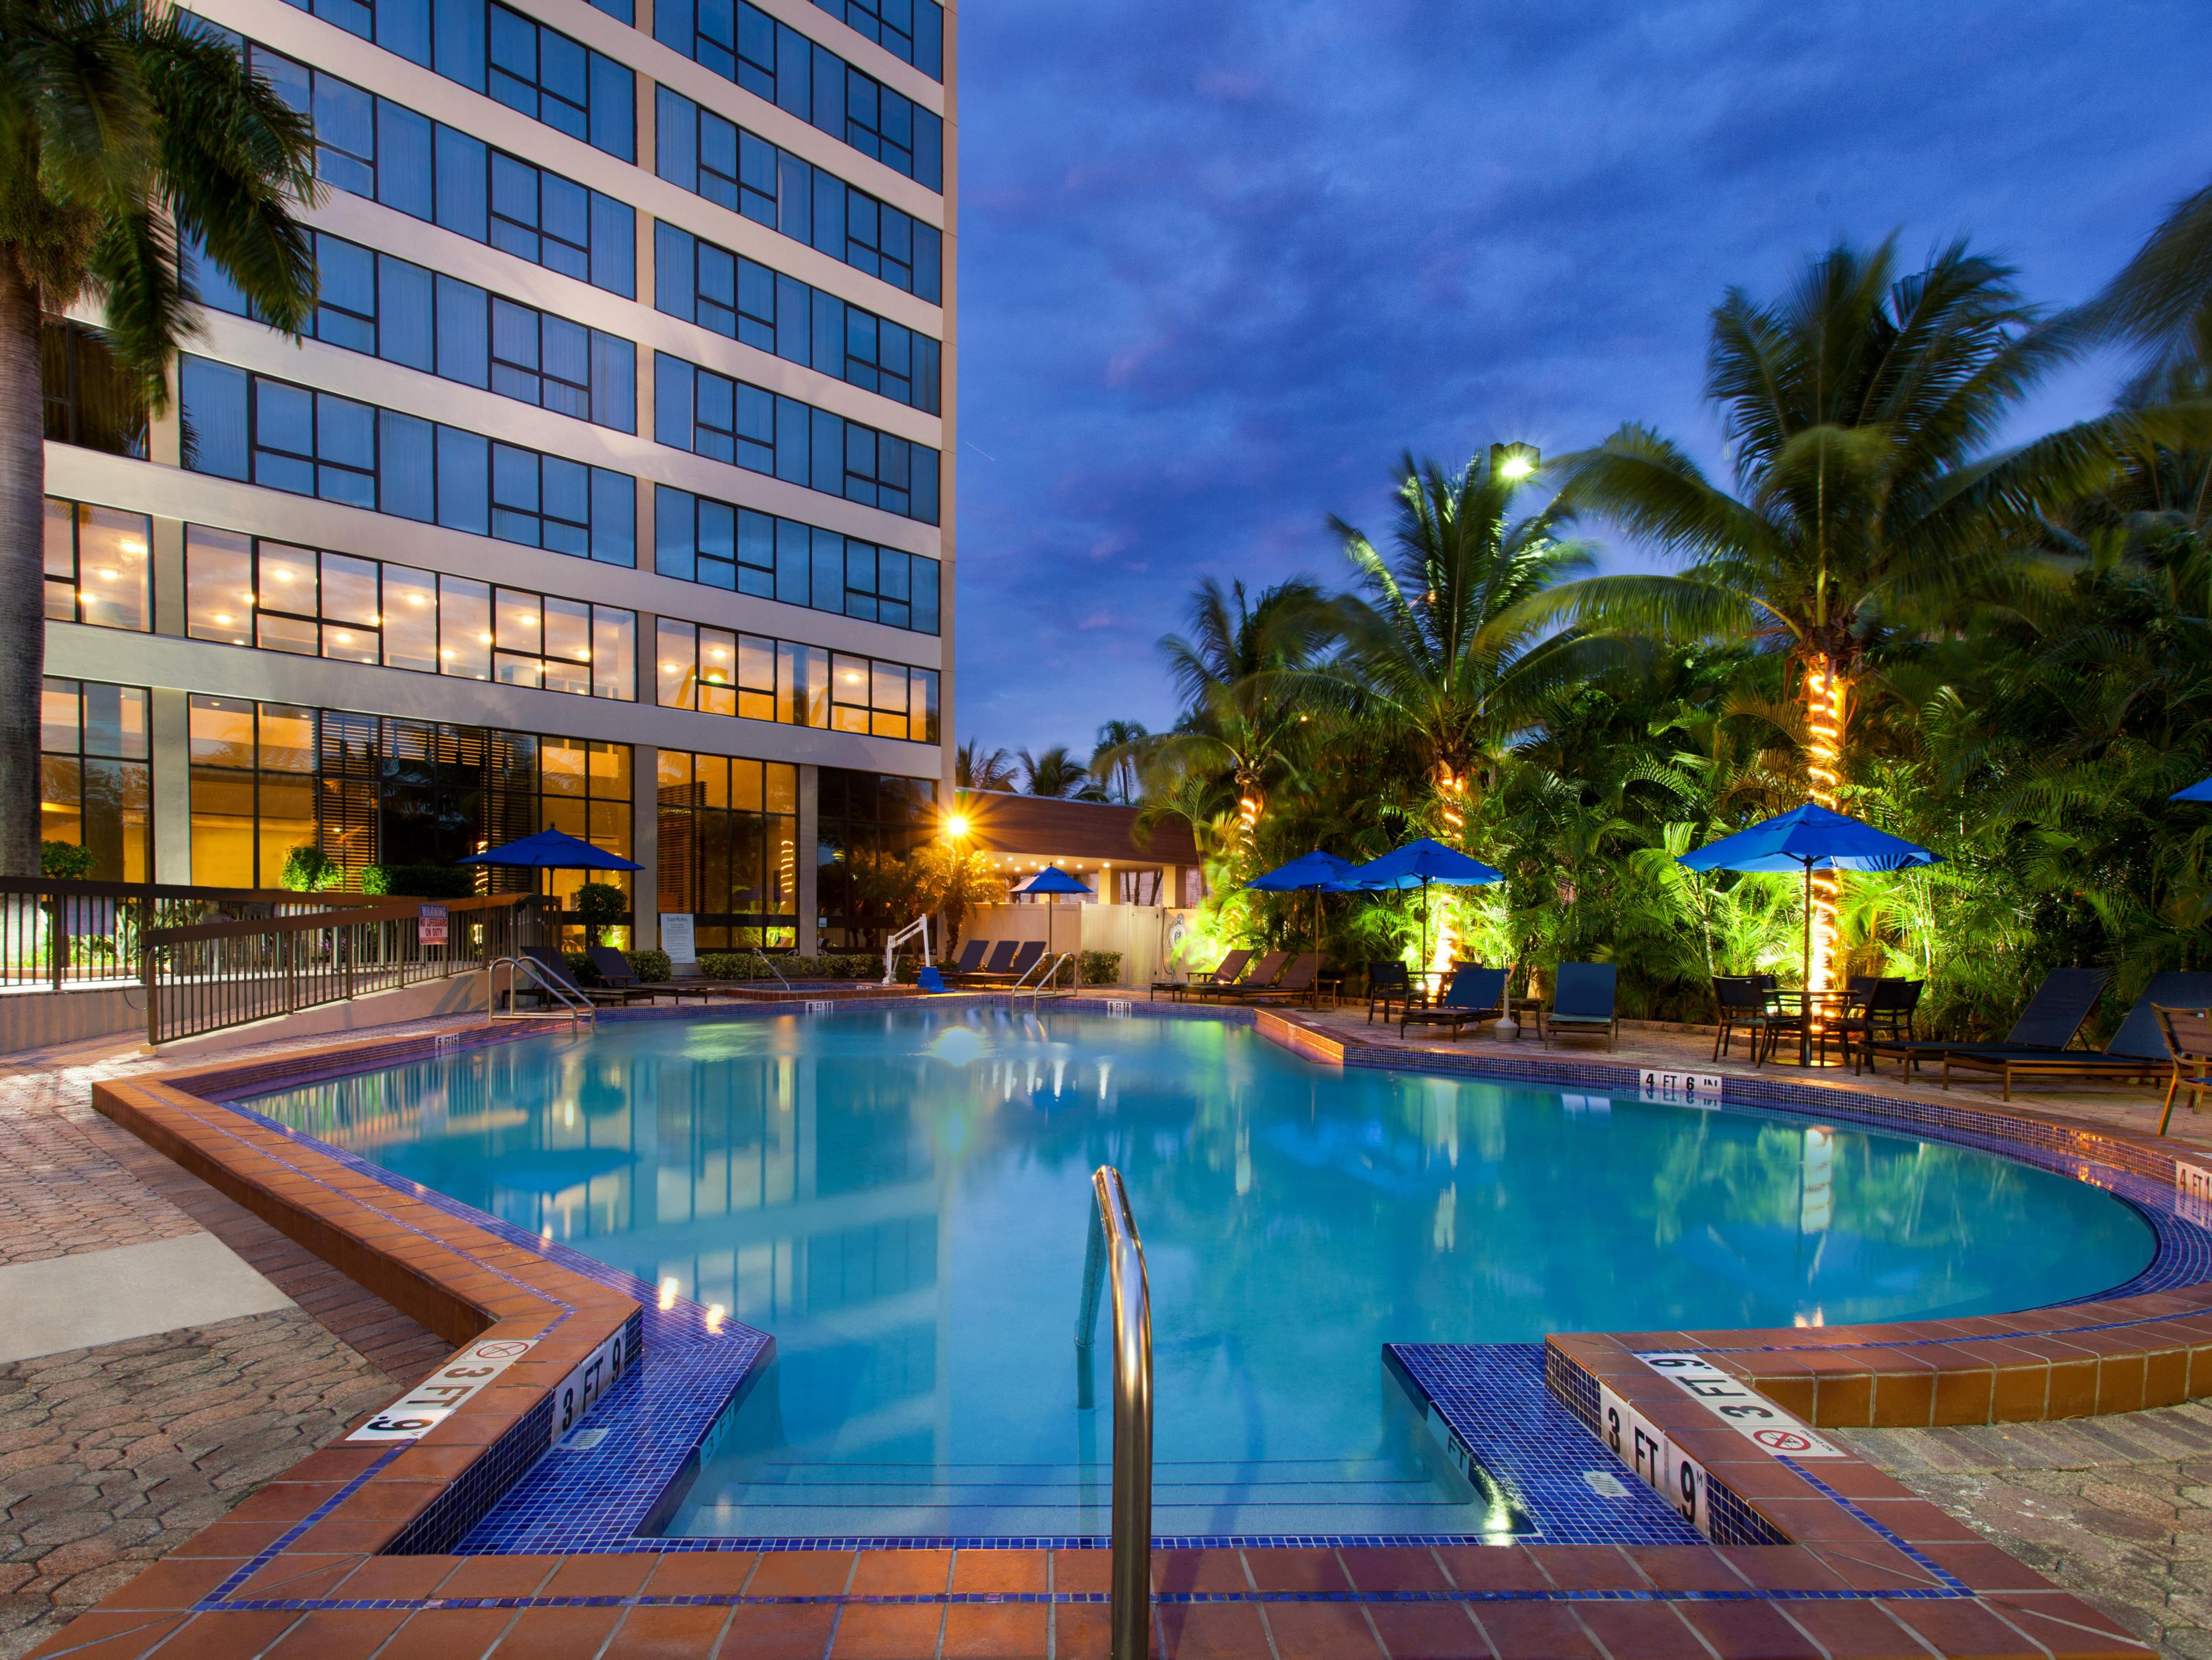 Holiday Inn Hotels In South Beach Florida